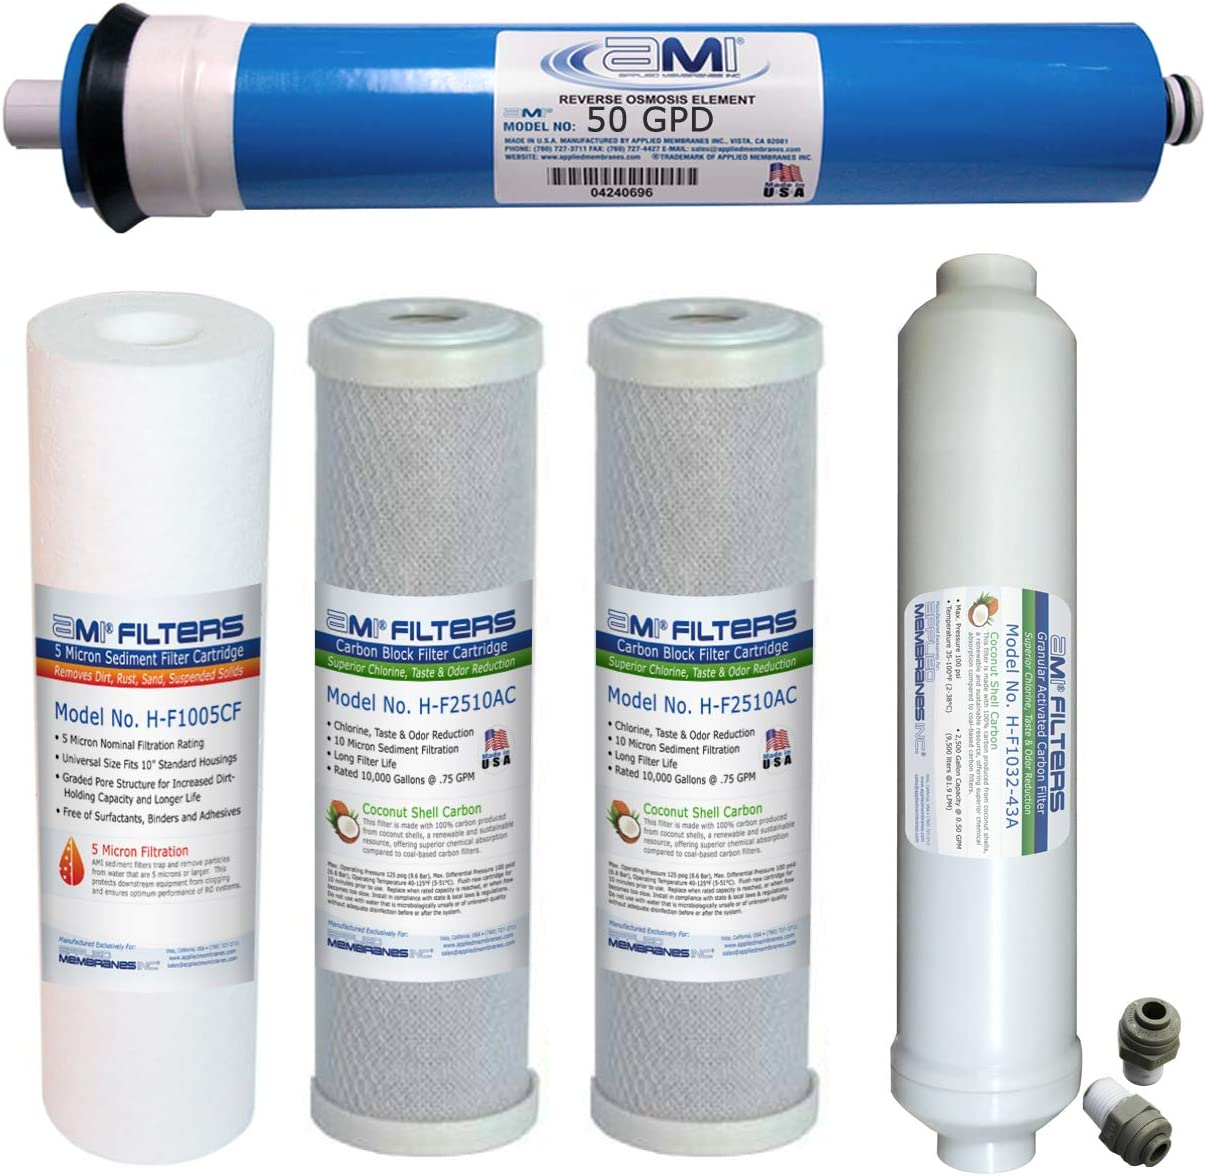 AMI Reverse Osmosis Membrane & Filter Replacement | 50 GPD Membrane with Pre & Post Filter Complete RO Filter Set | For 5 Stage Water Filtration Systems (50 GPD Membrane + Filters)